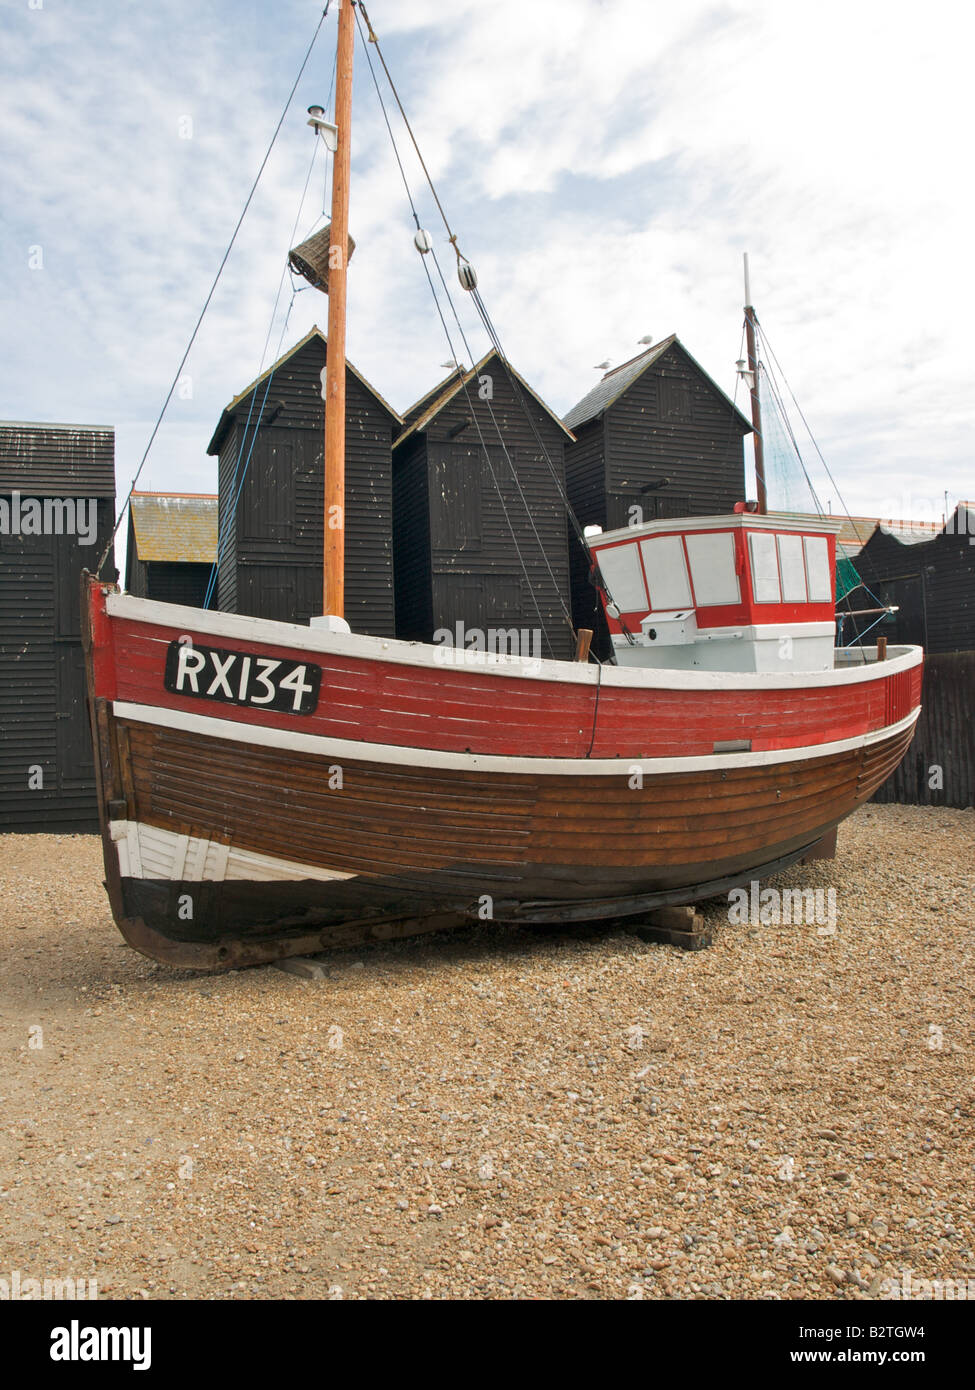 Net Shop and old fishing boat at Hastings - Stock Image